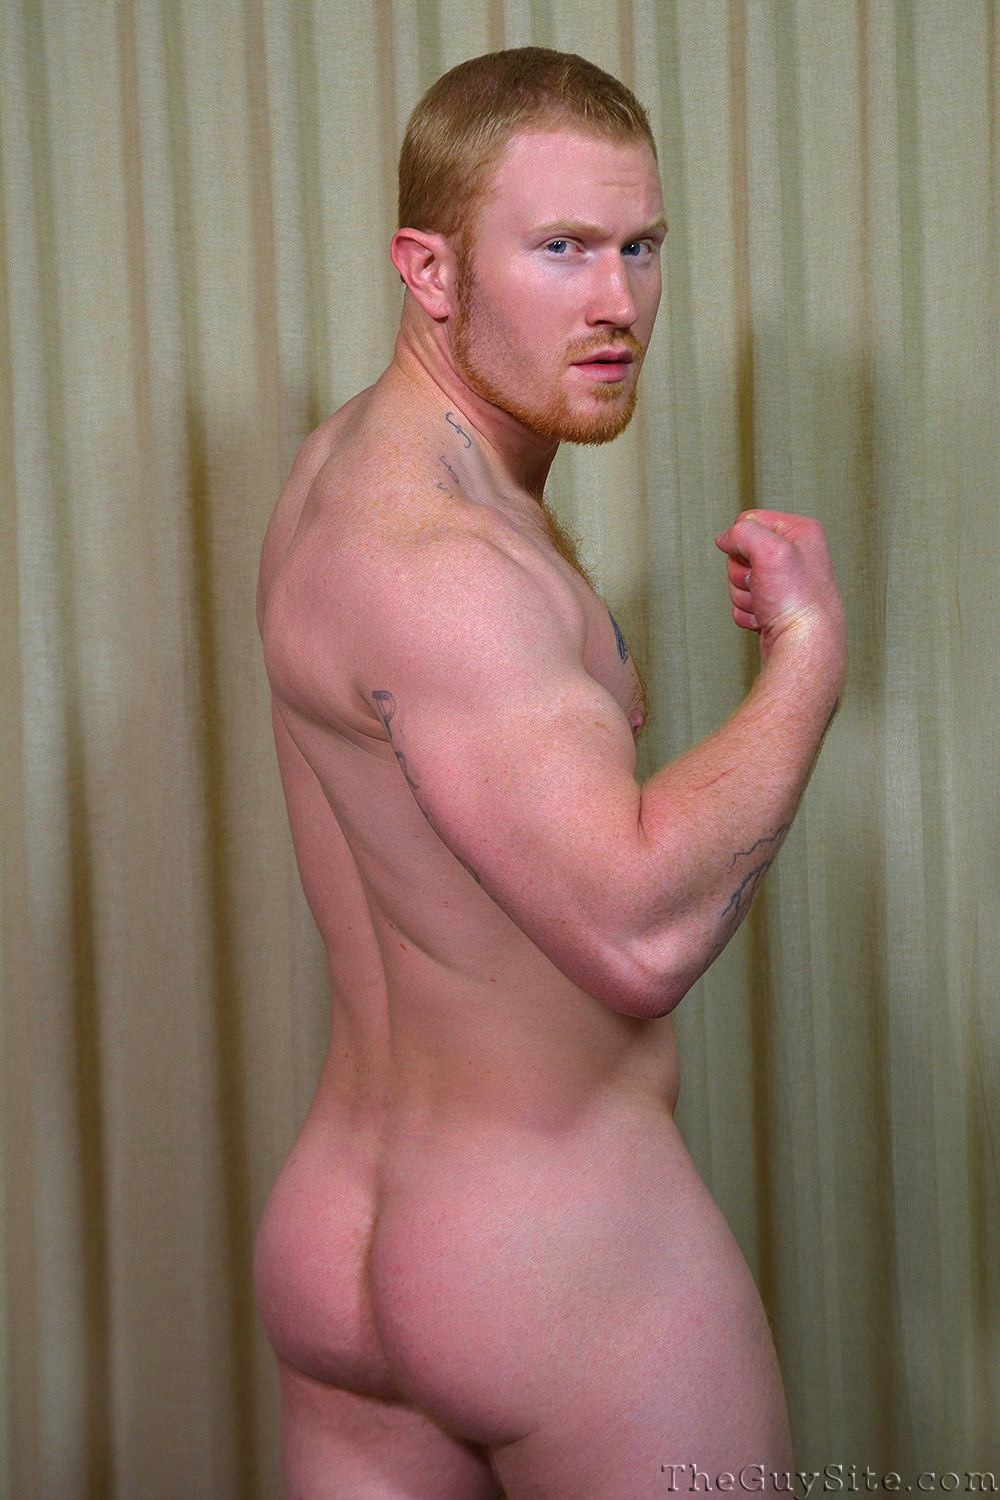 Free gay ginger videos